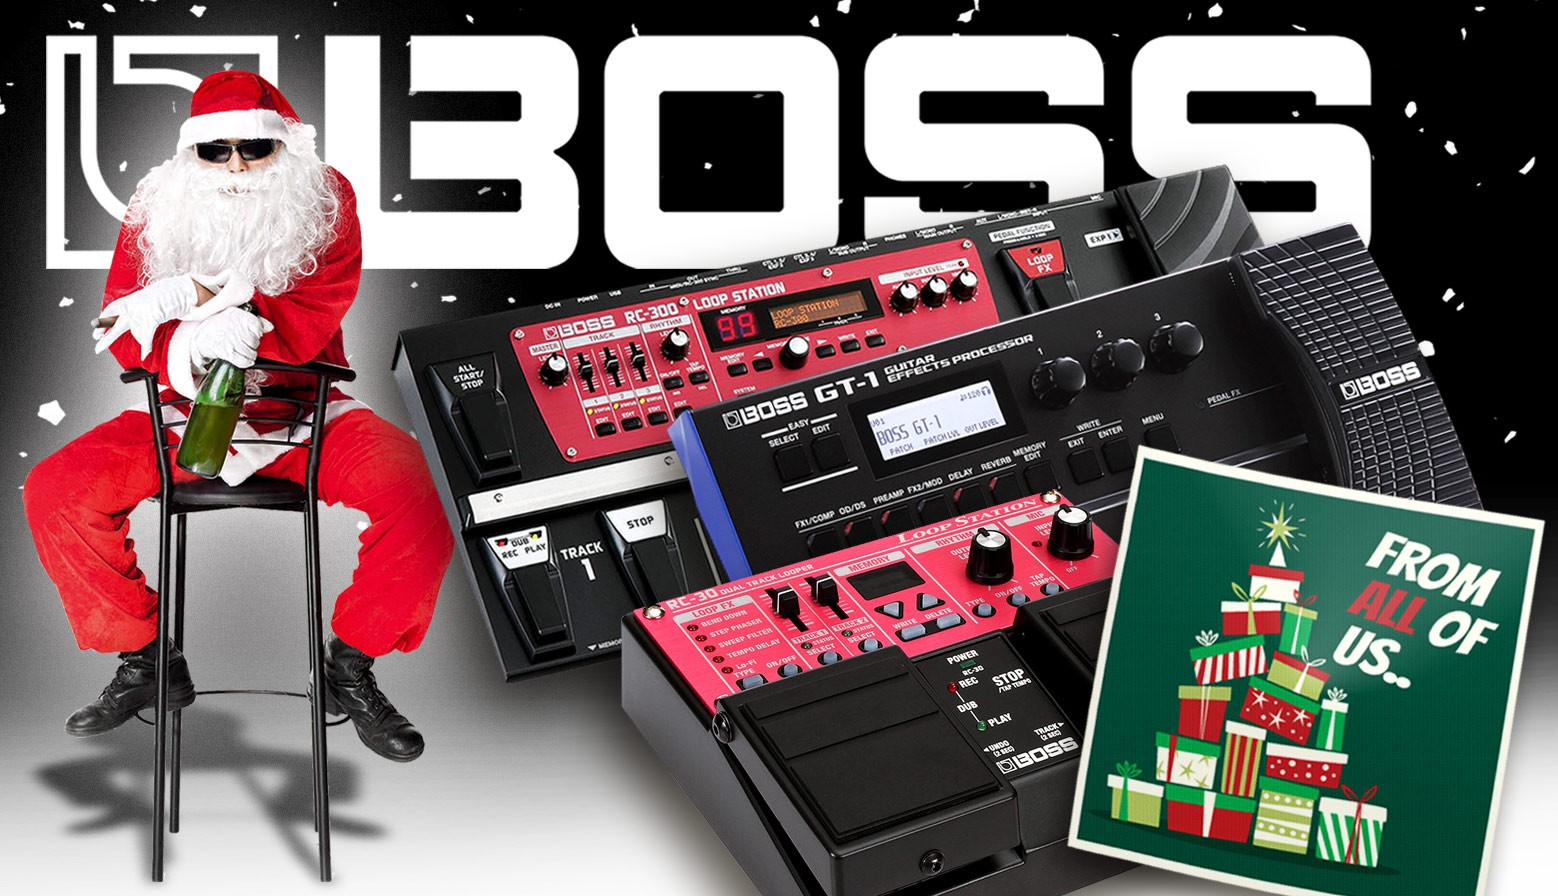 Boss X-mas slider